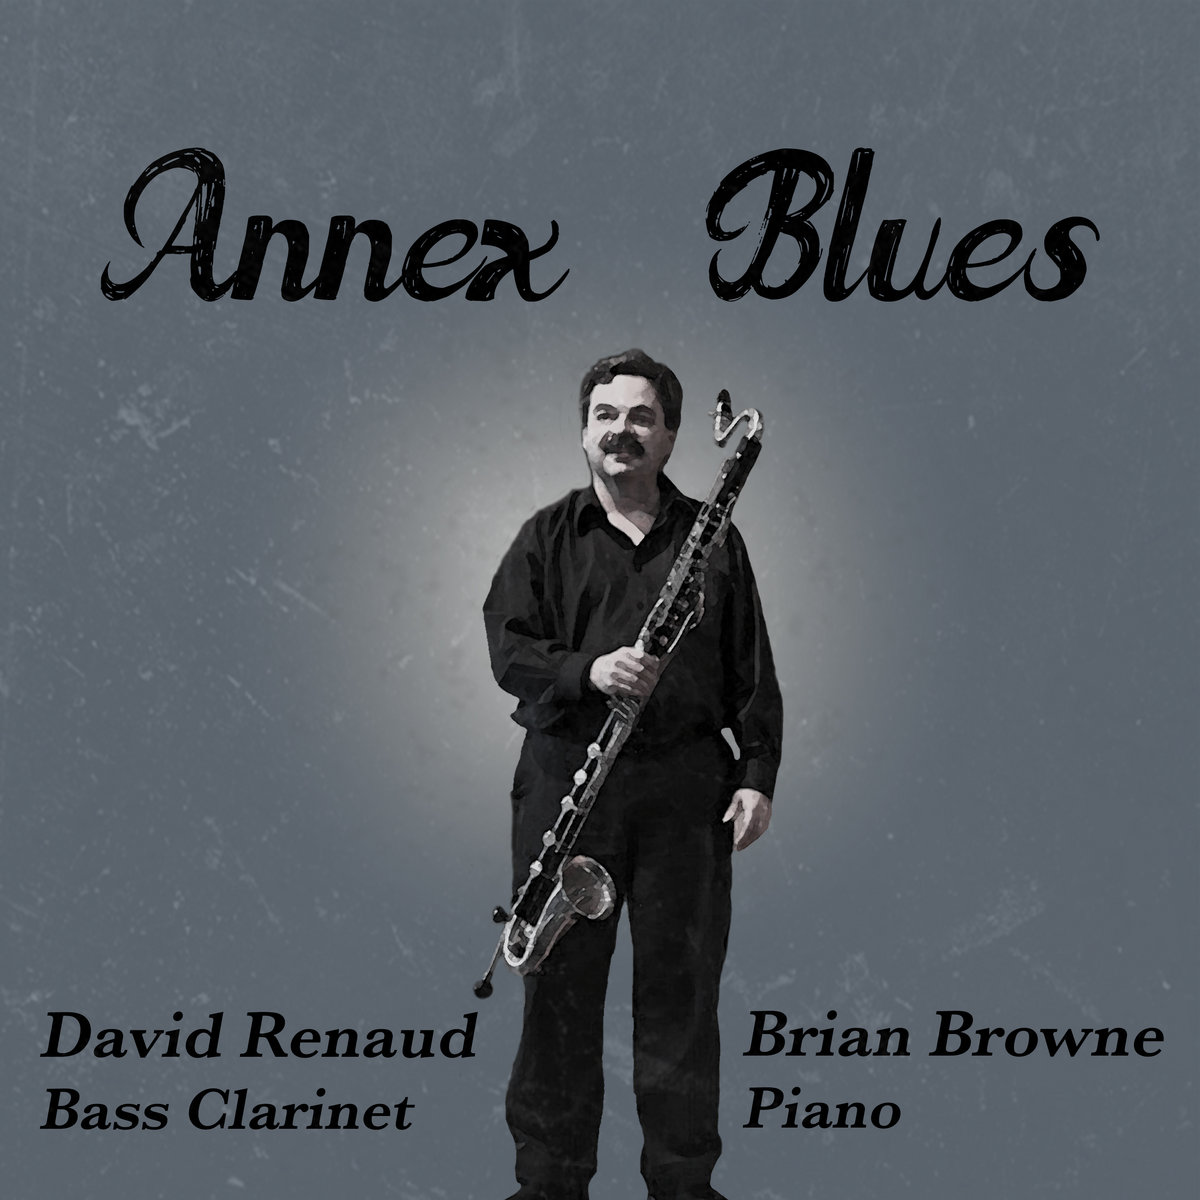 Annex Blues by Davd Renaud